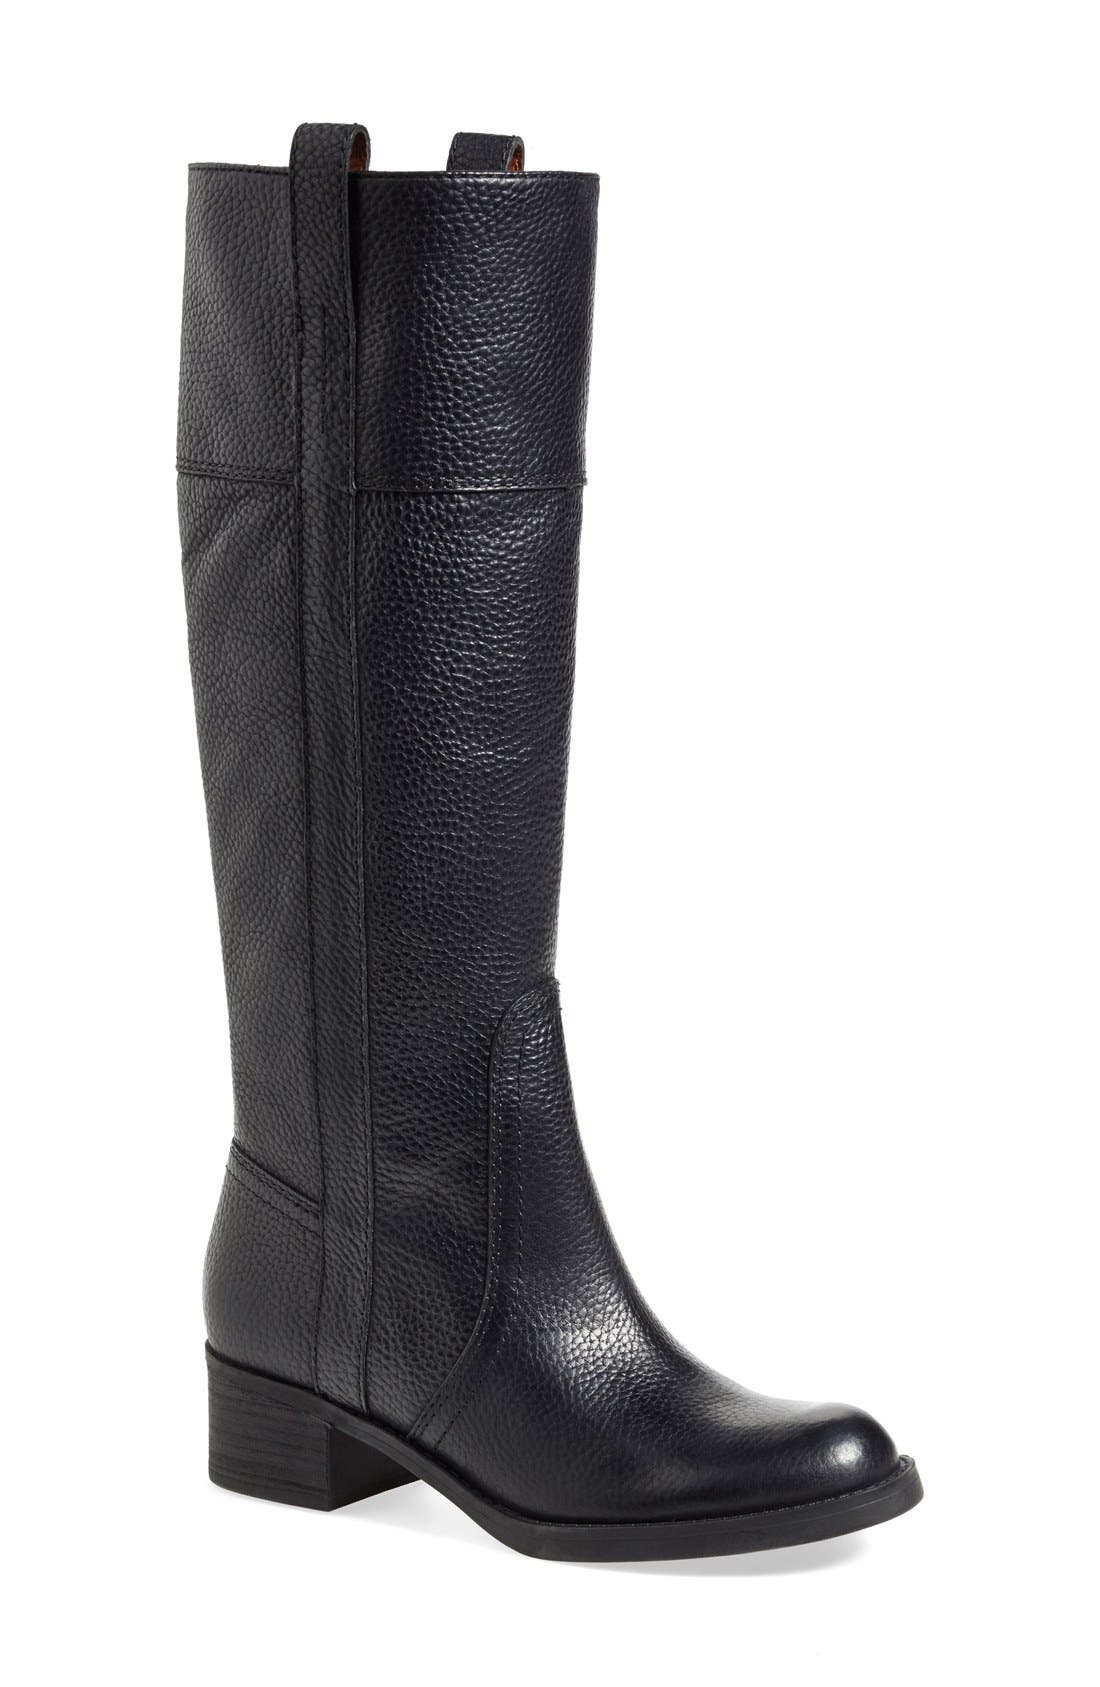 Alternate Image 1 Selected - Lucky Brand 'Heloisse' Boot (Wide Calf) (Women)